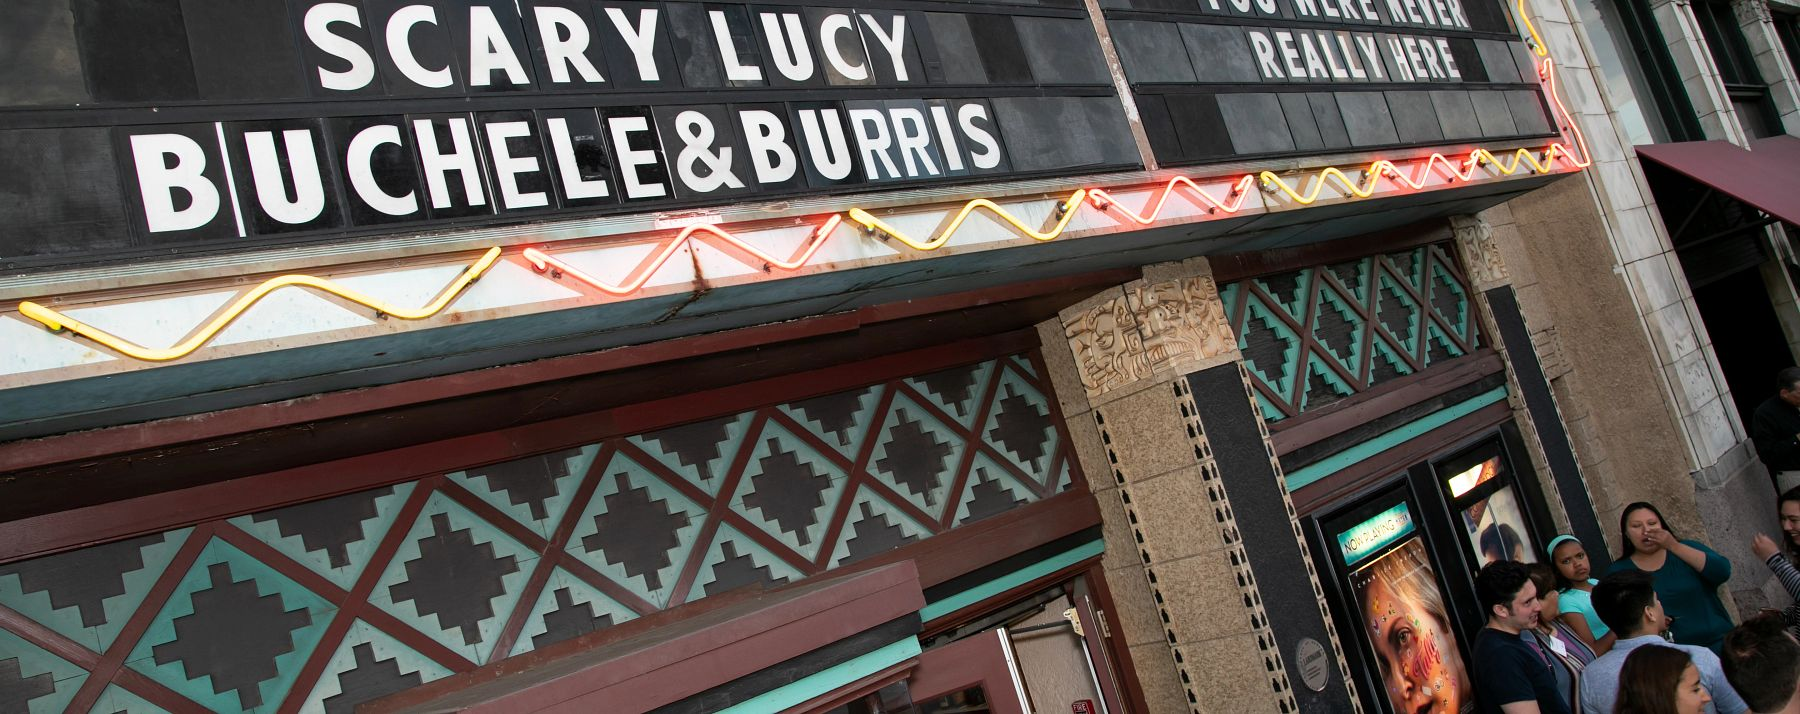 du film on marquee